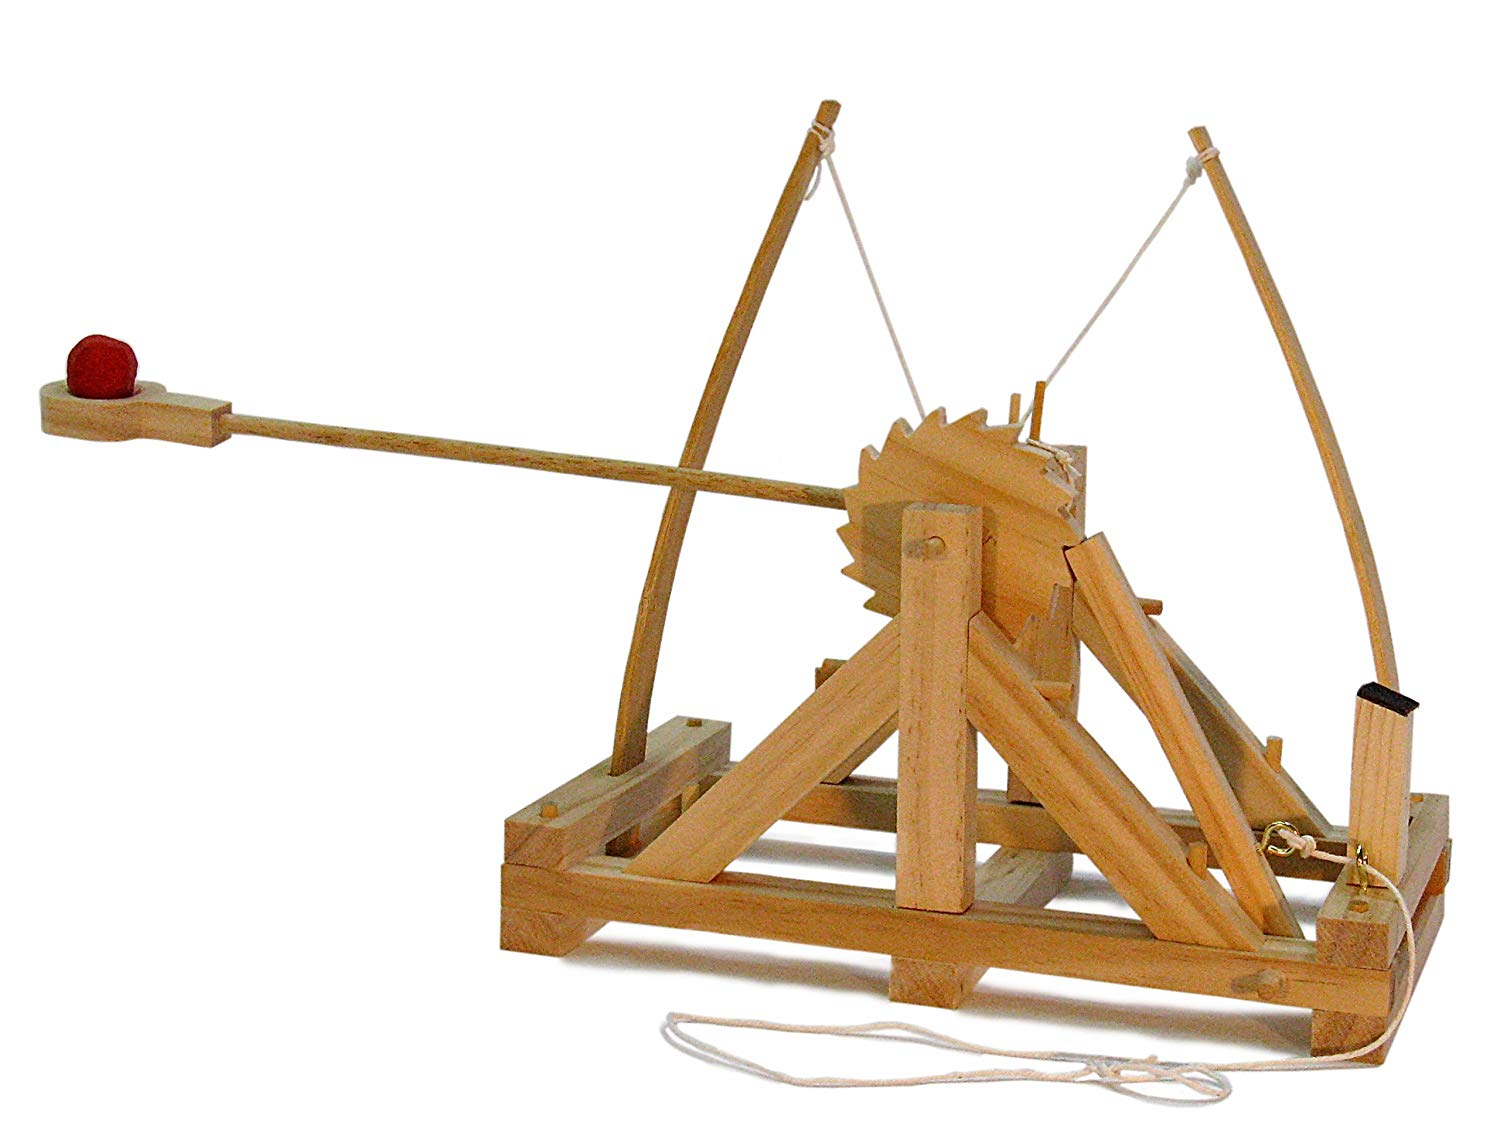 Leonardo da Vinci Catapult Kit